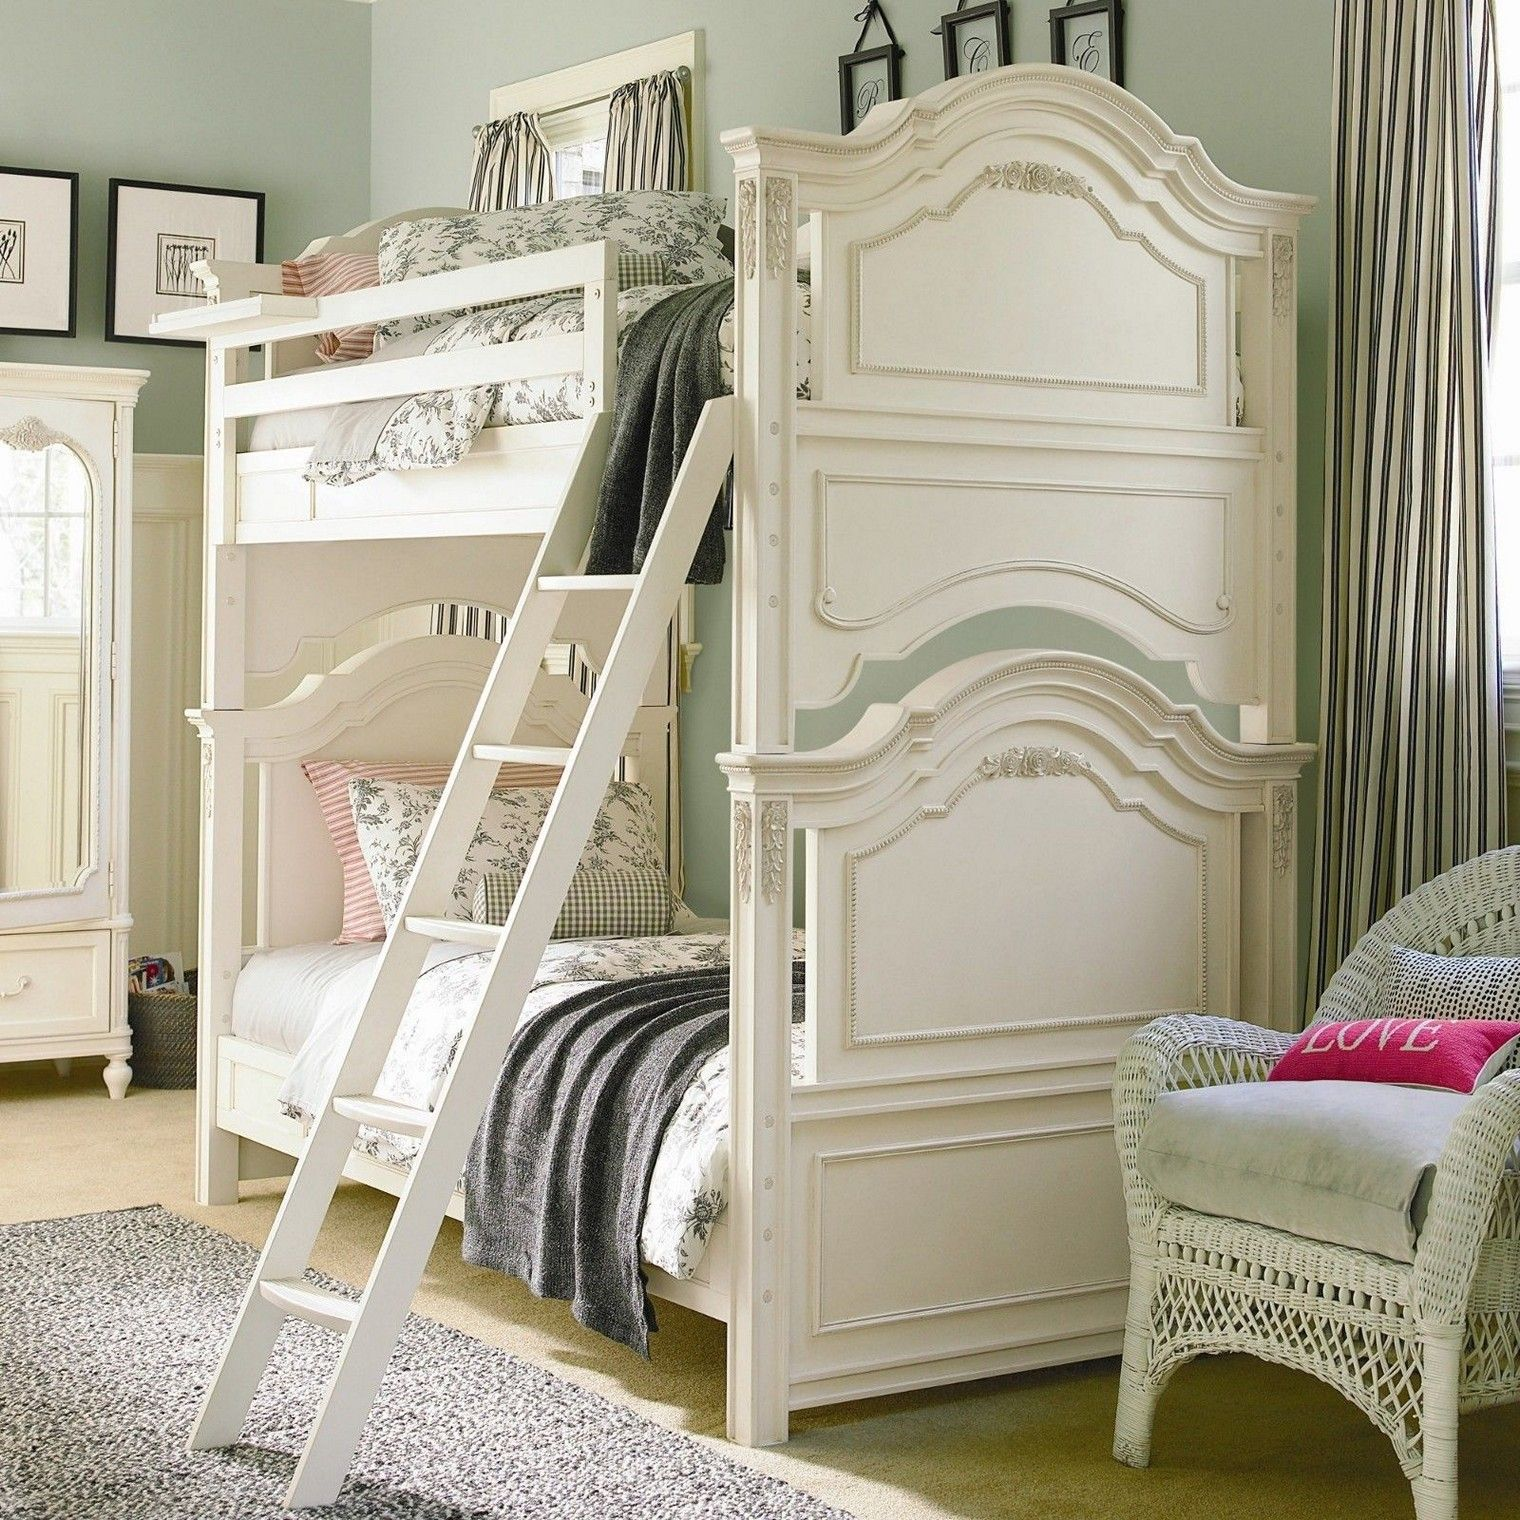 Cool Bunk Bed Ideas for Kids & Cool Bunk Bed Ideas for Kids | Projects to Try | Pinterest | Bunk bed